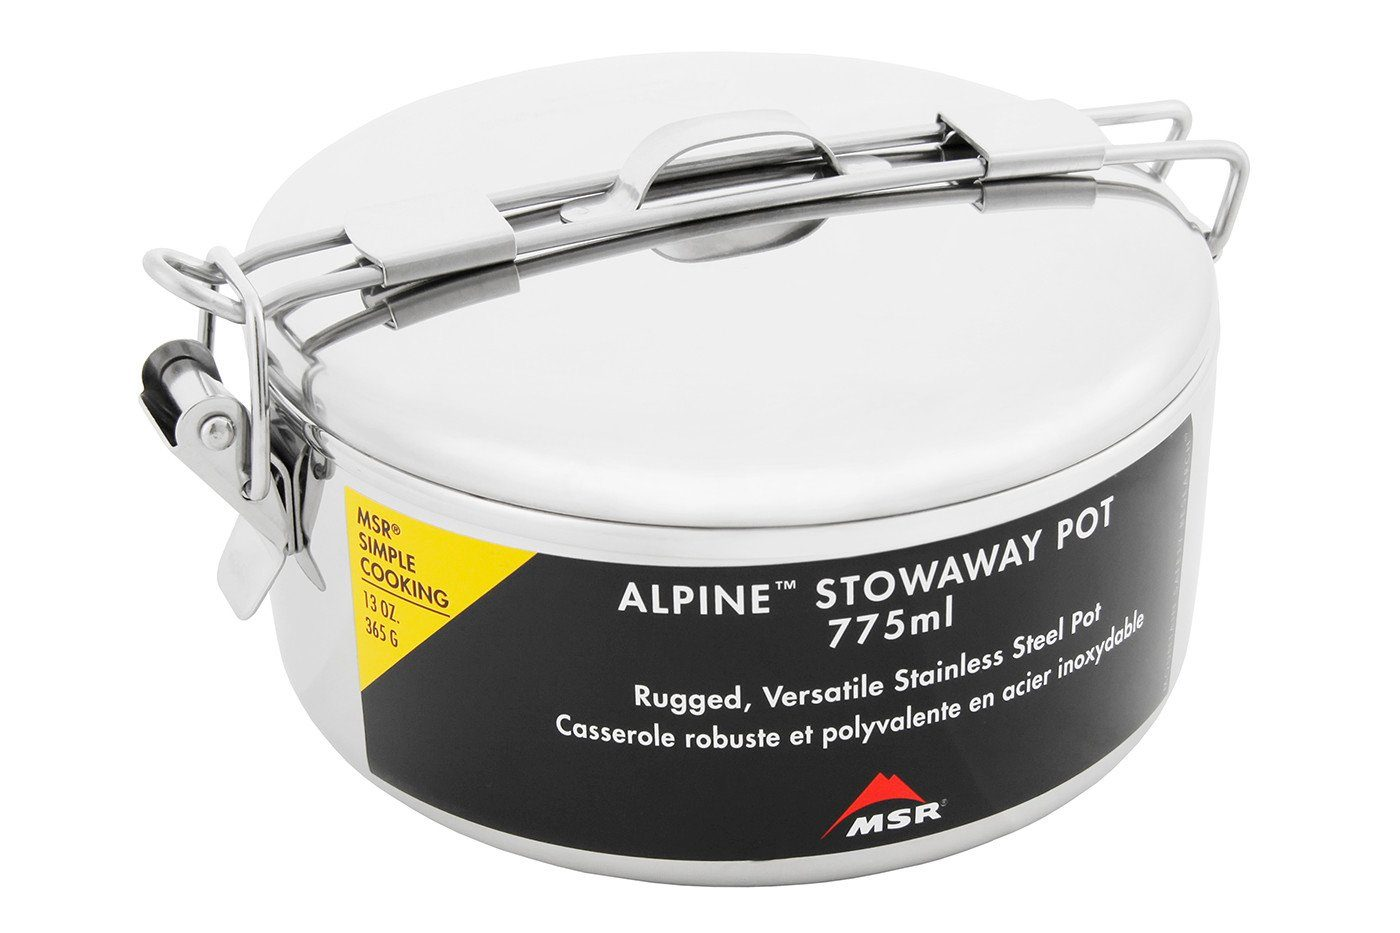 MSR Camping-Geschirr »Alpine Stowaway Pot 775ml«